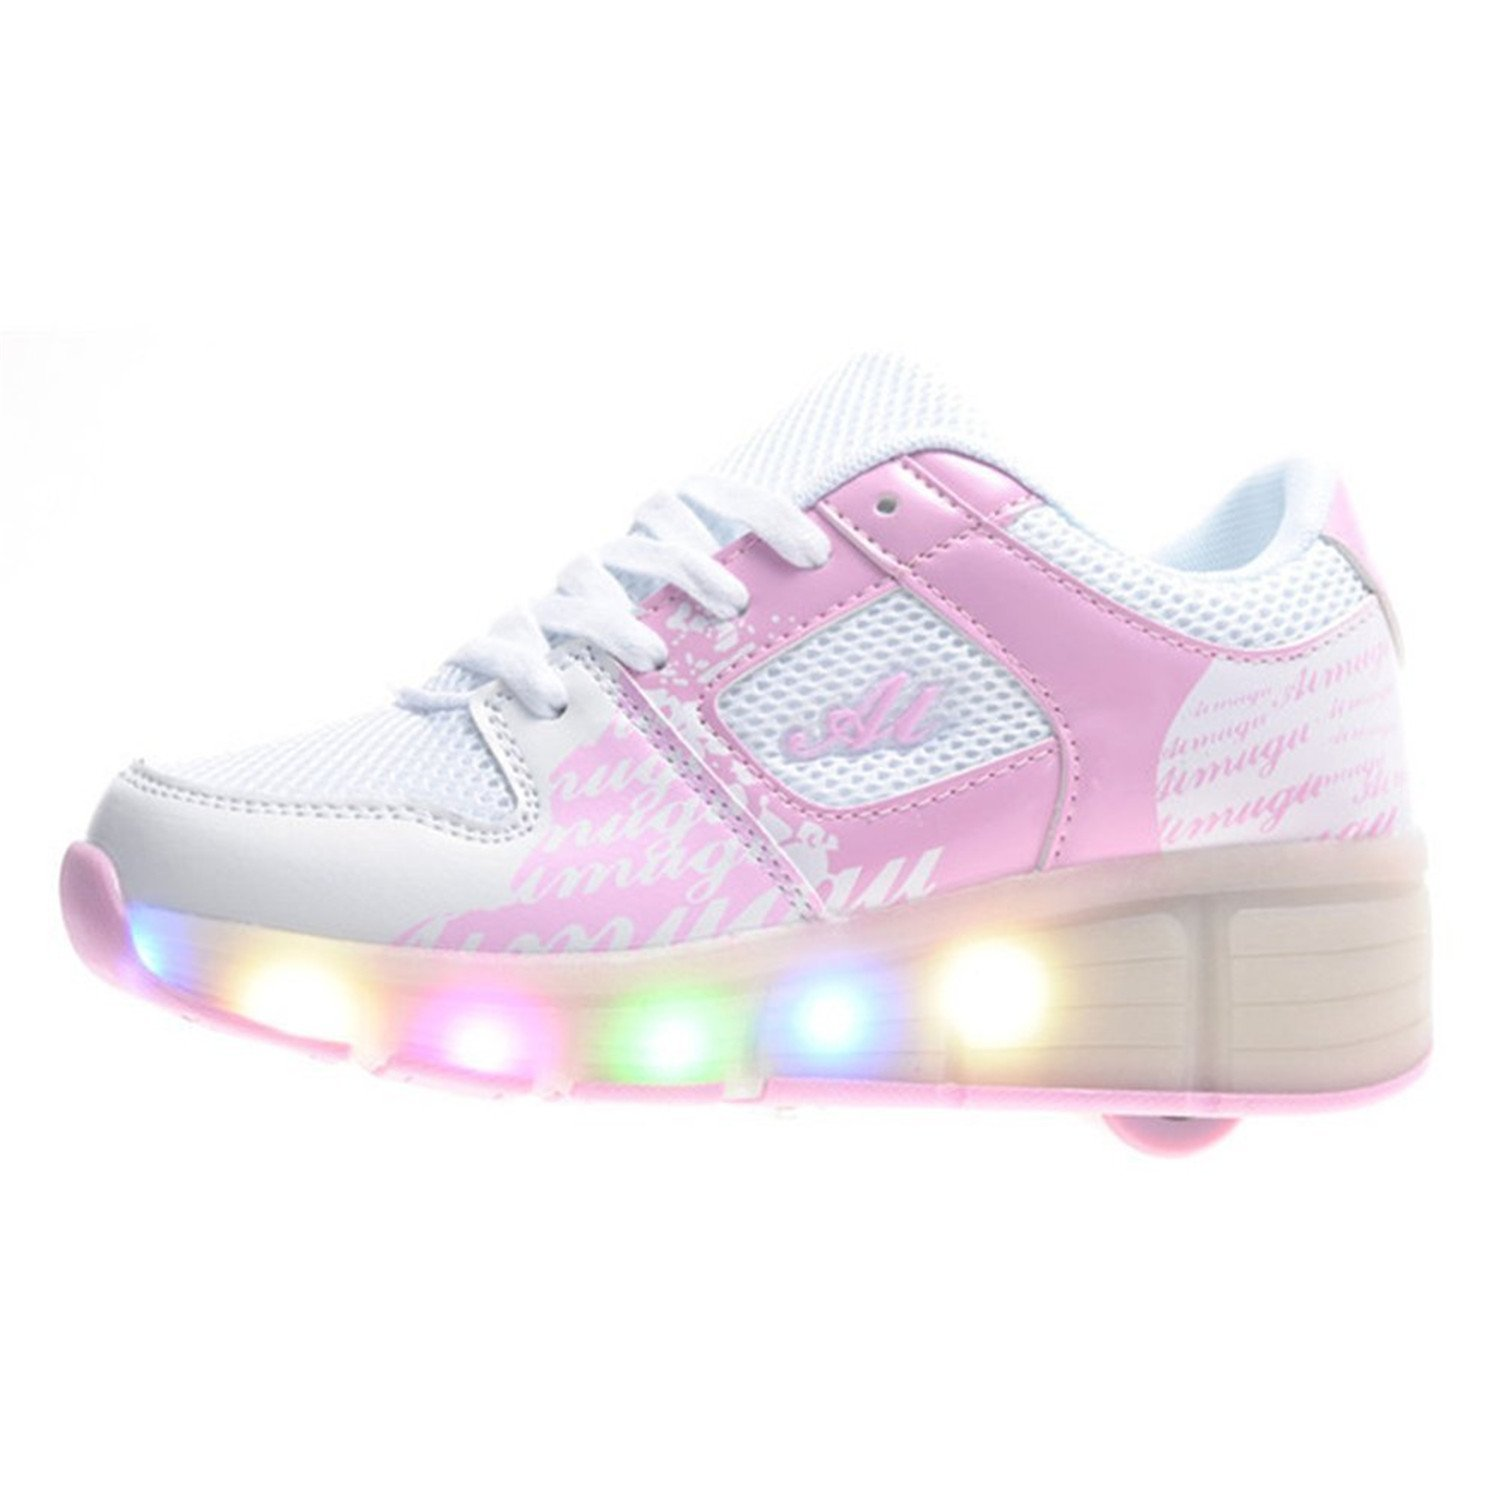 Cheap Pink And White Heelys, find Pink